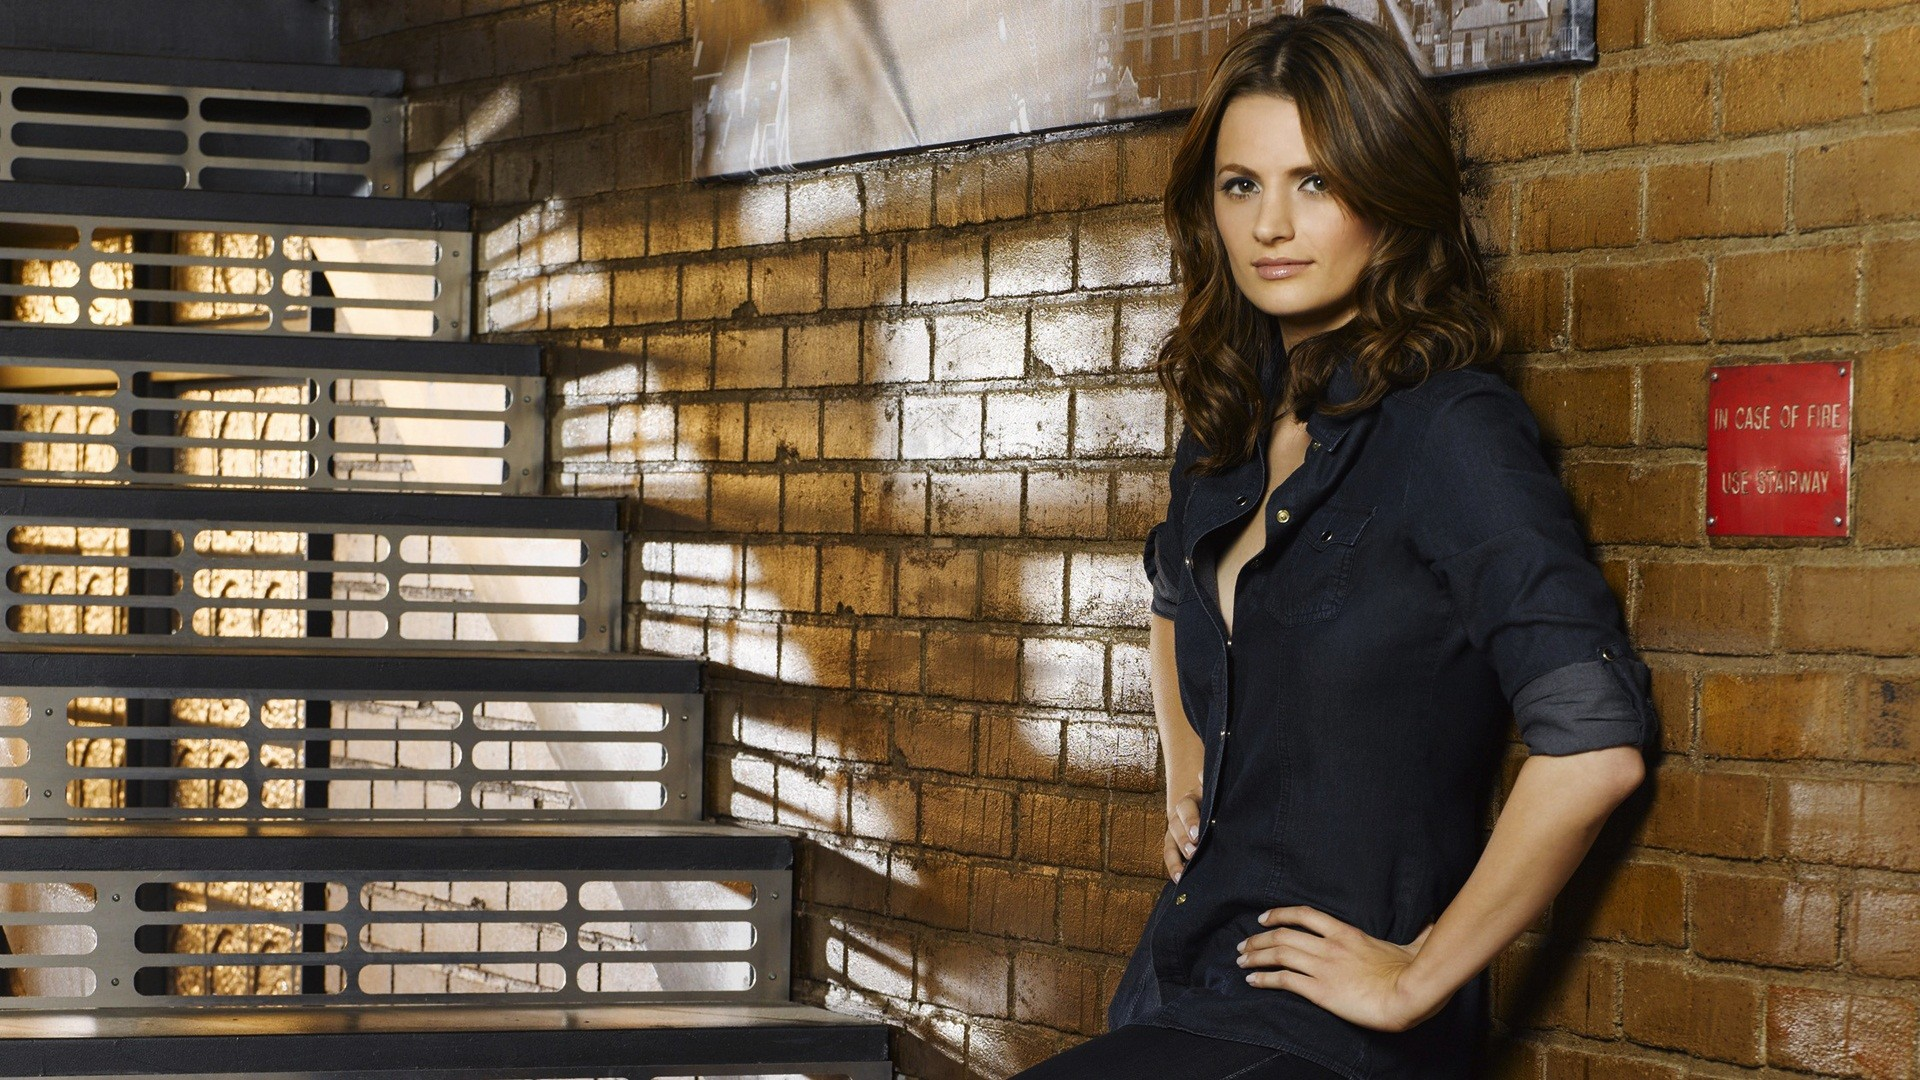 1920x1080 Stana Katic widescreen wallpapers